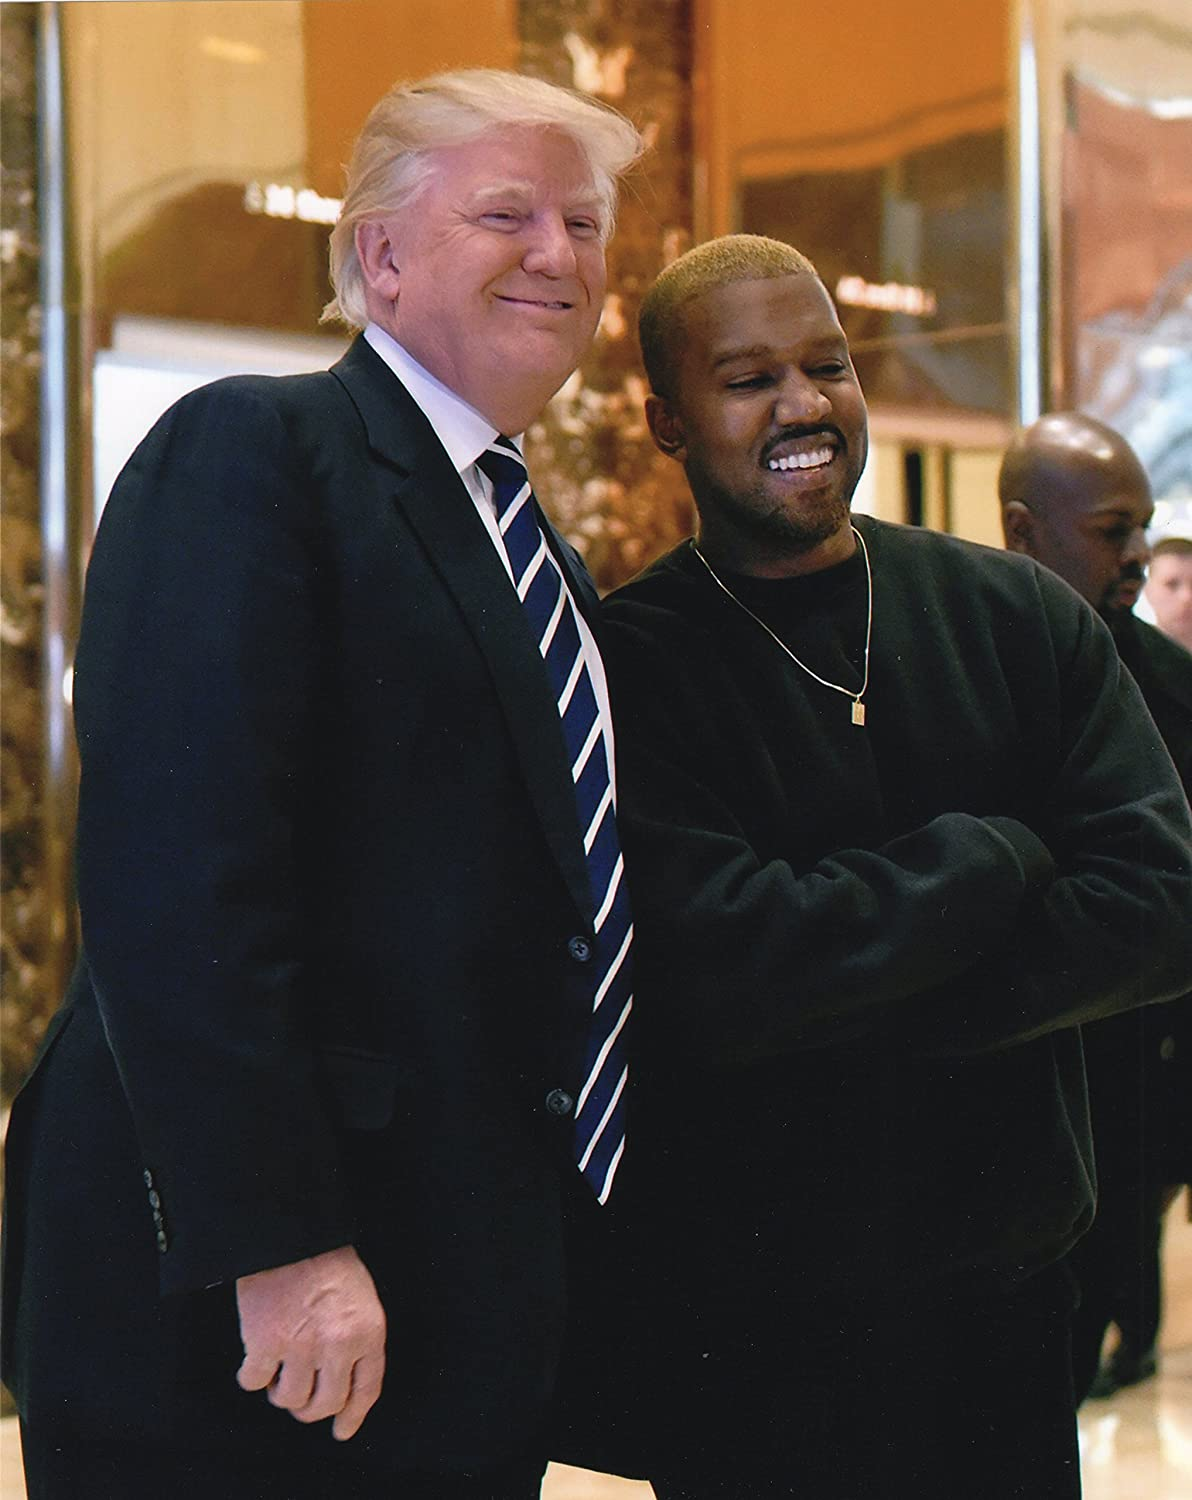 President Donald J Trump Kanye West Photo Free Thinkers Photos 8x10 Perfect Posters and Pics